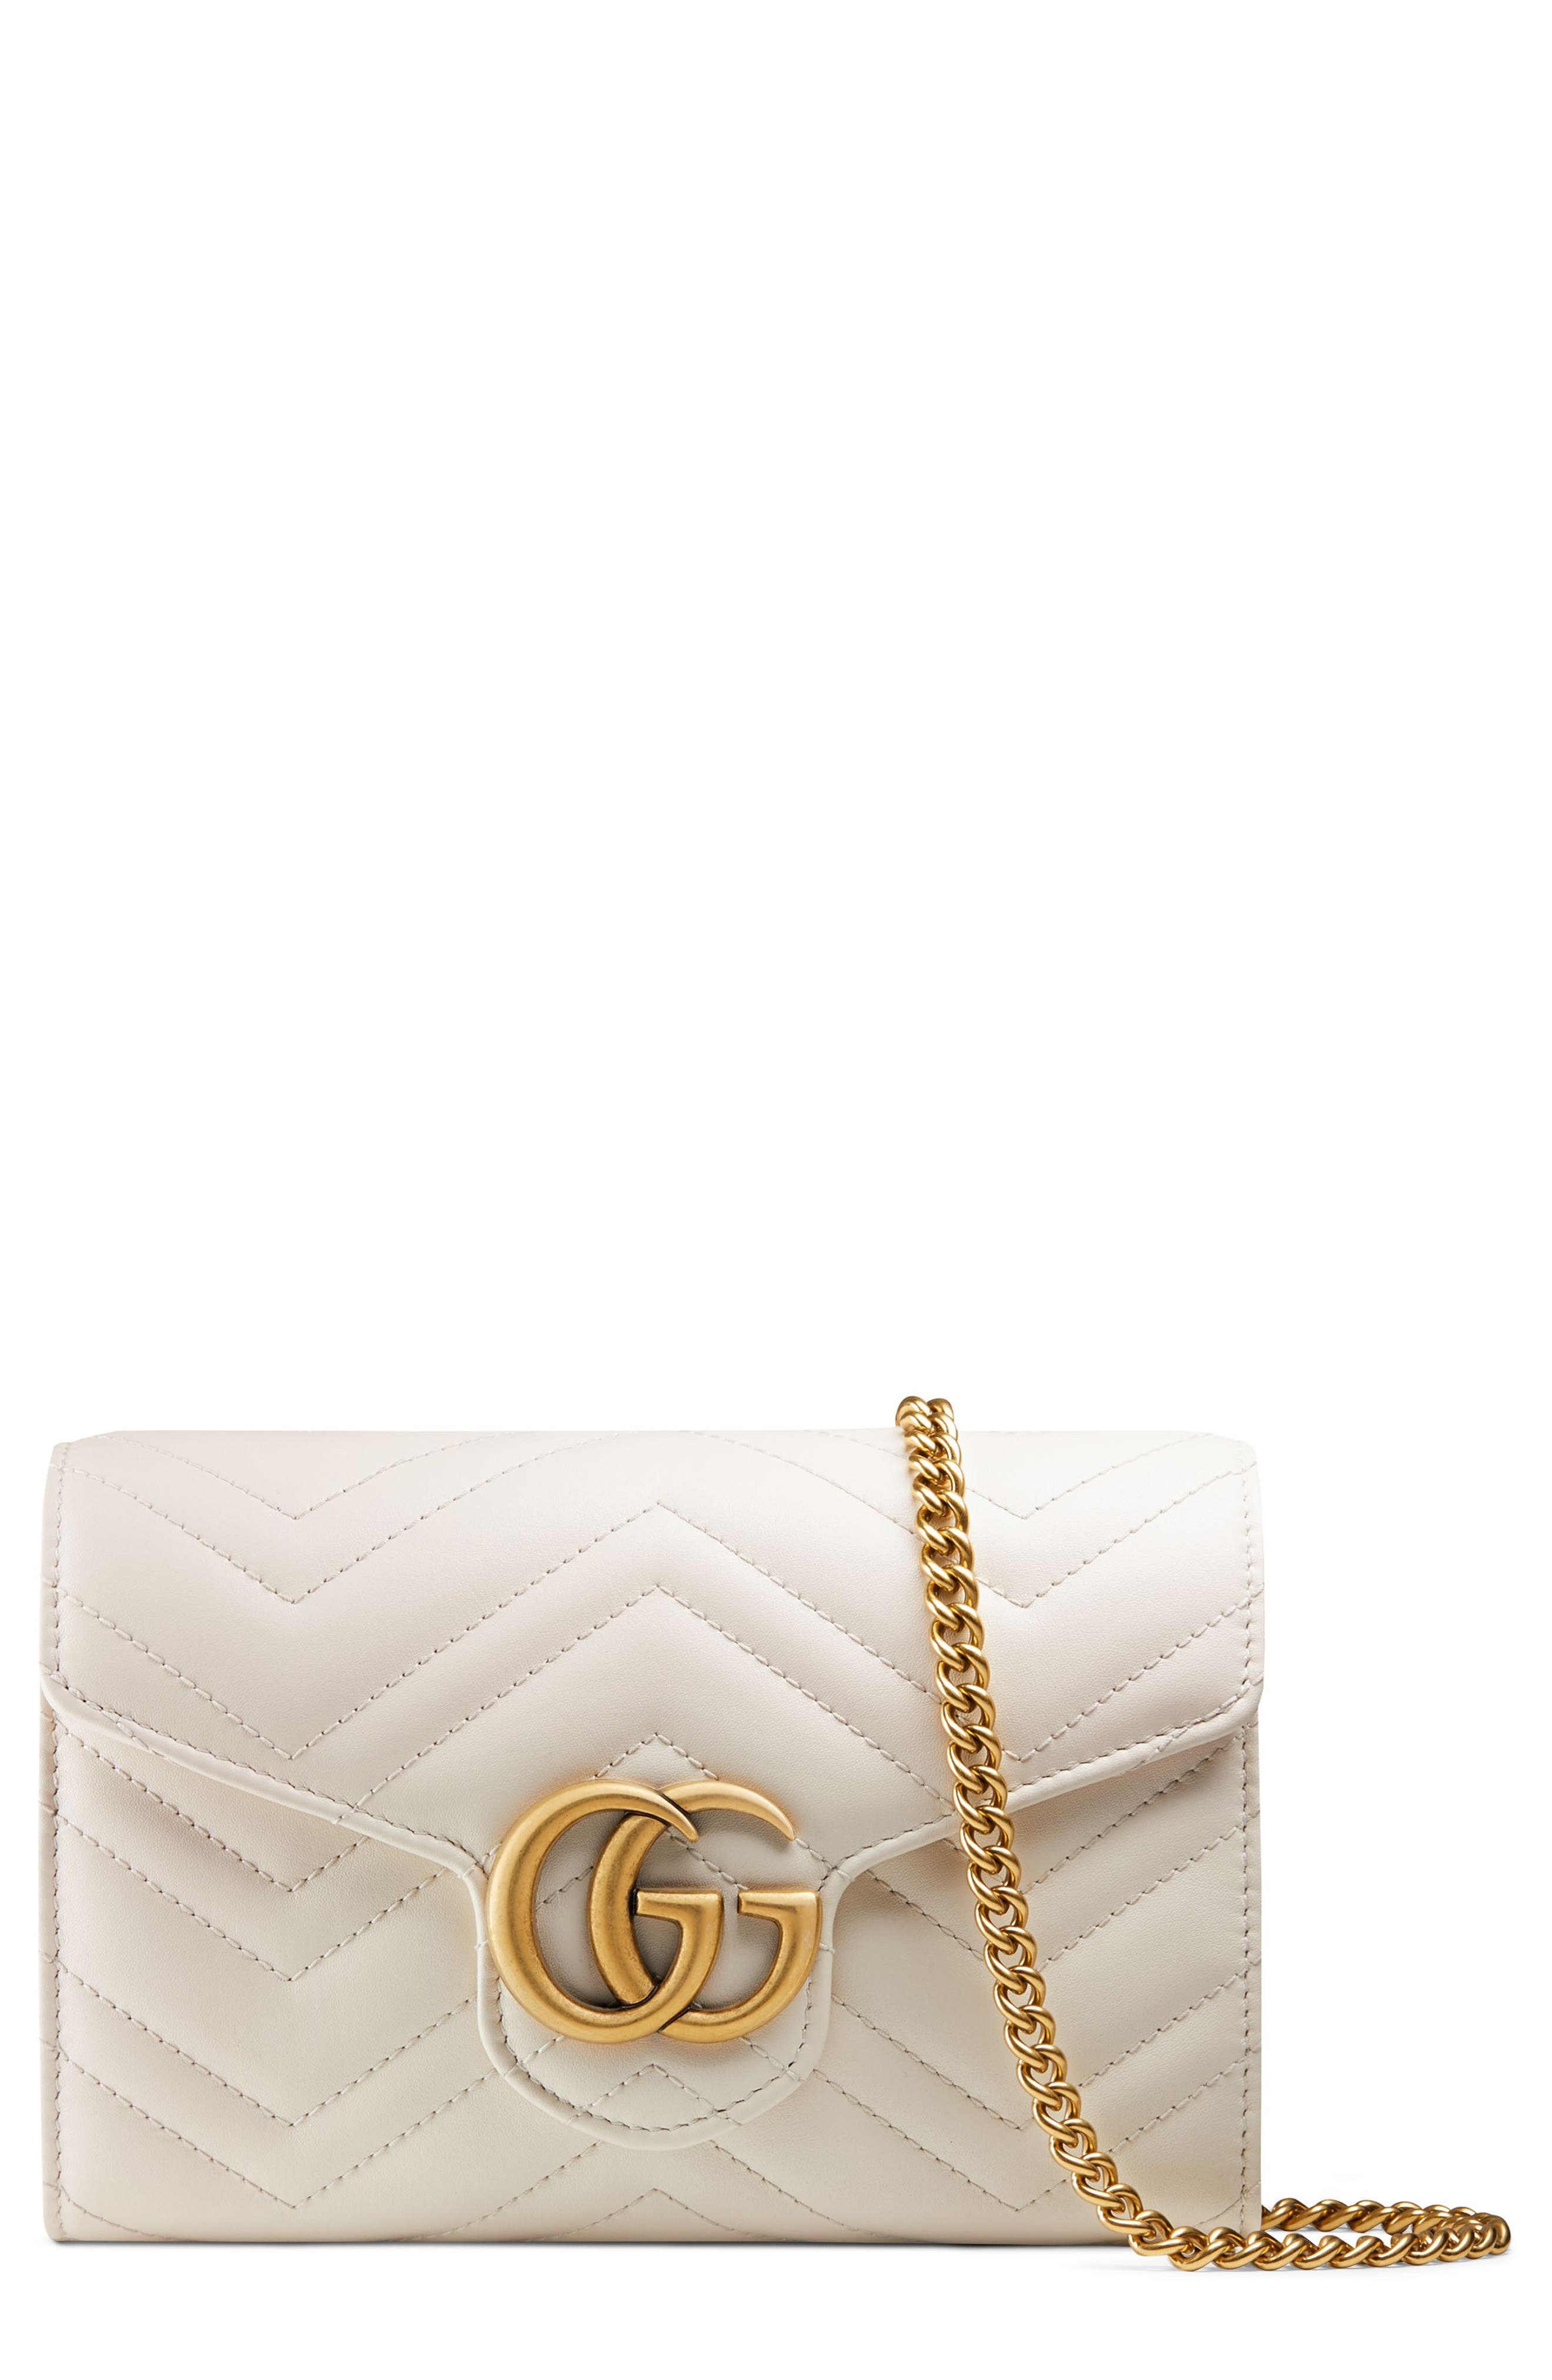 GG Marmont Matelassé Leather Wallet on a Chain